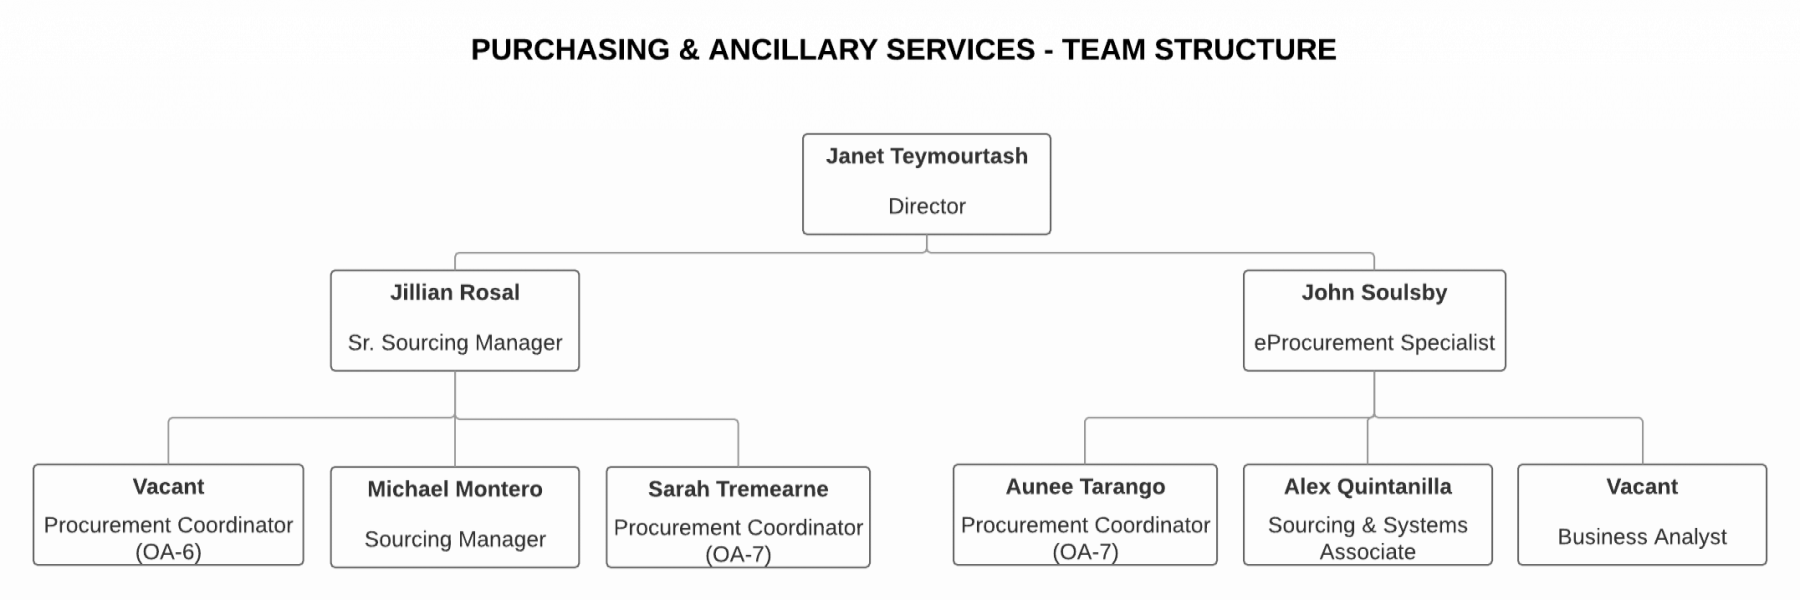 Purchasing and Ancillary Services team structure chart